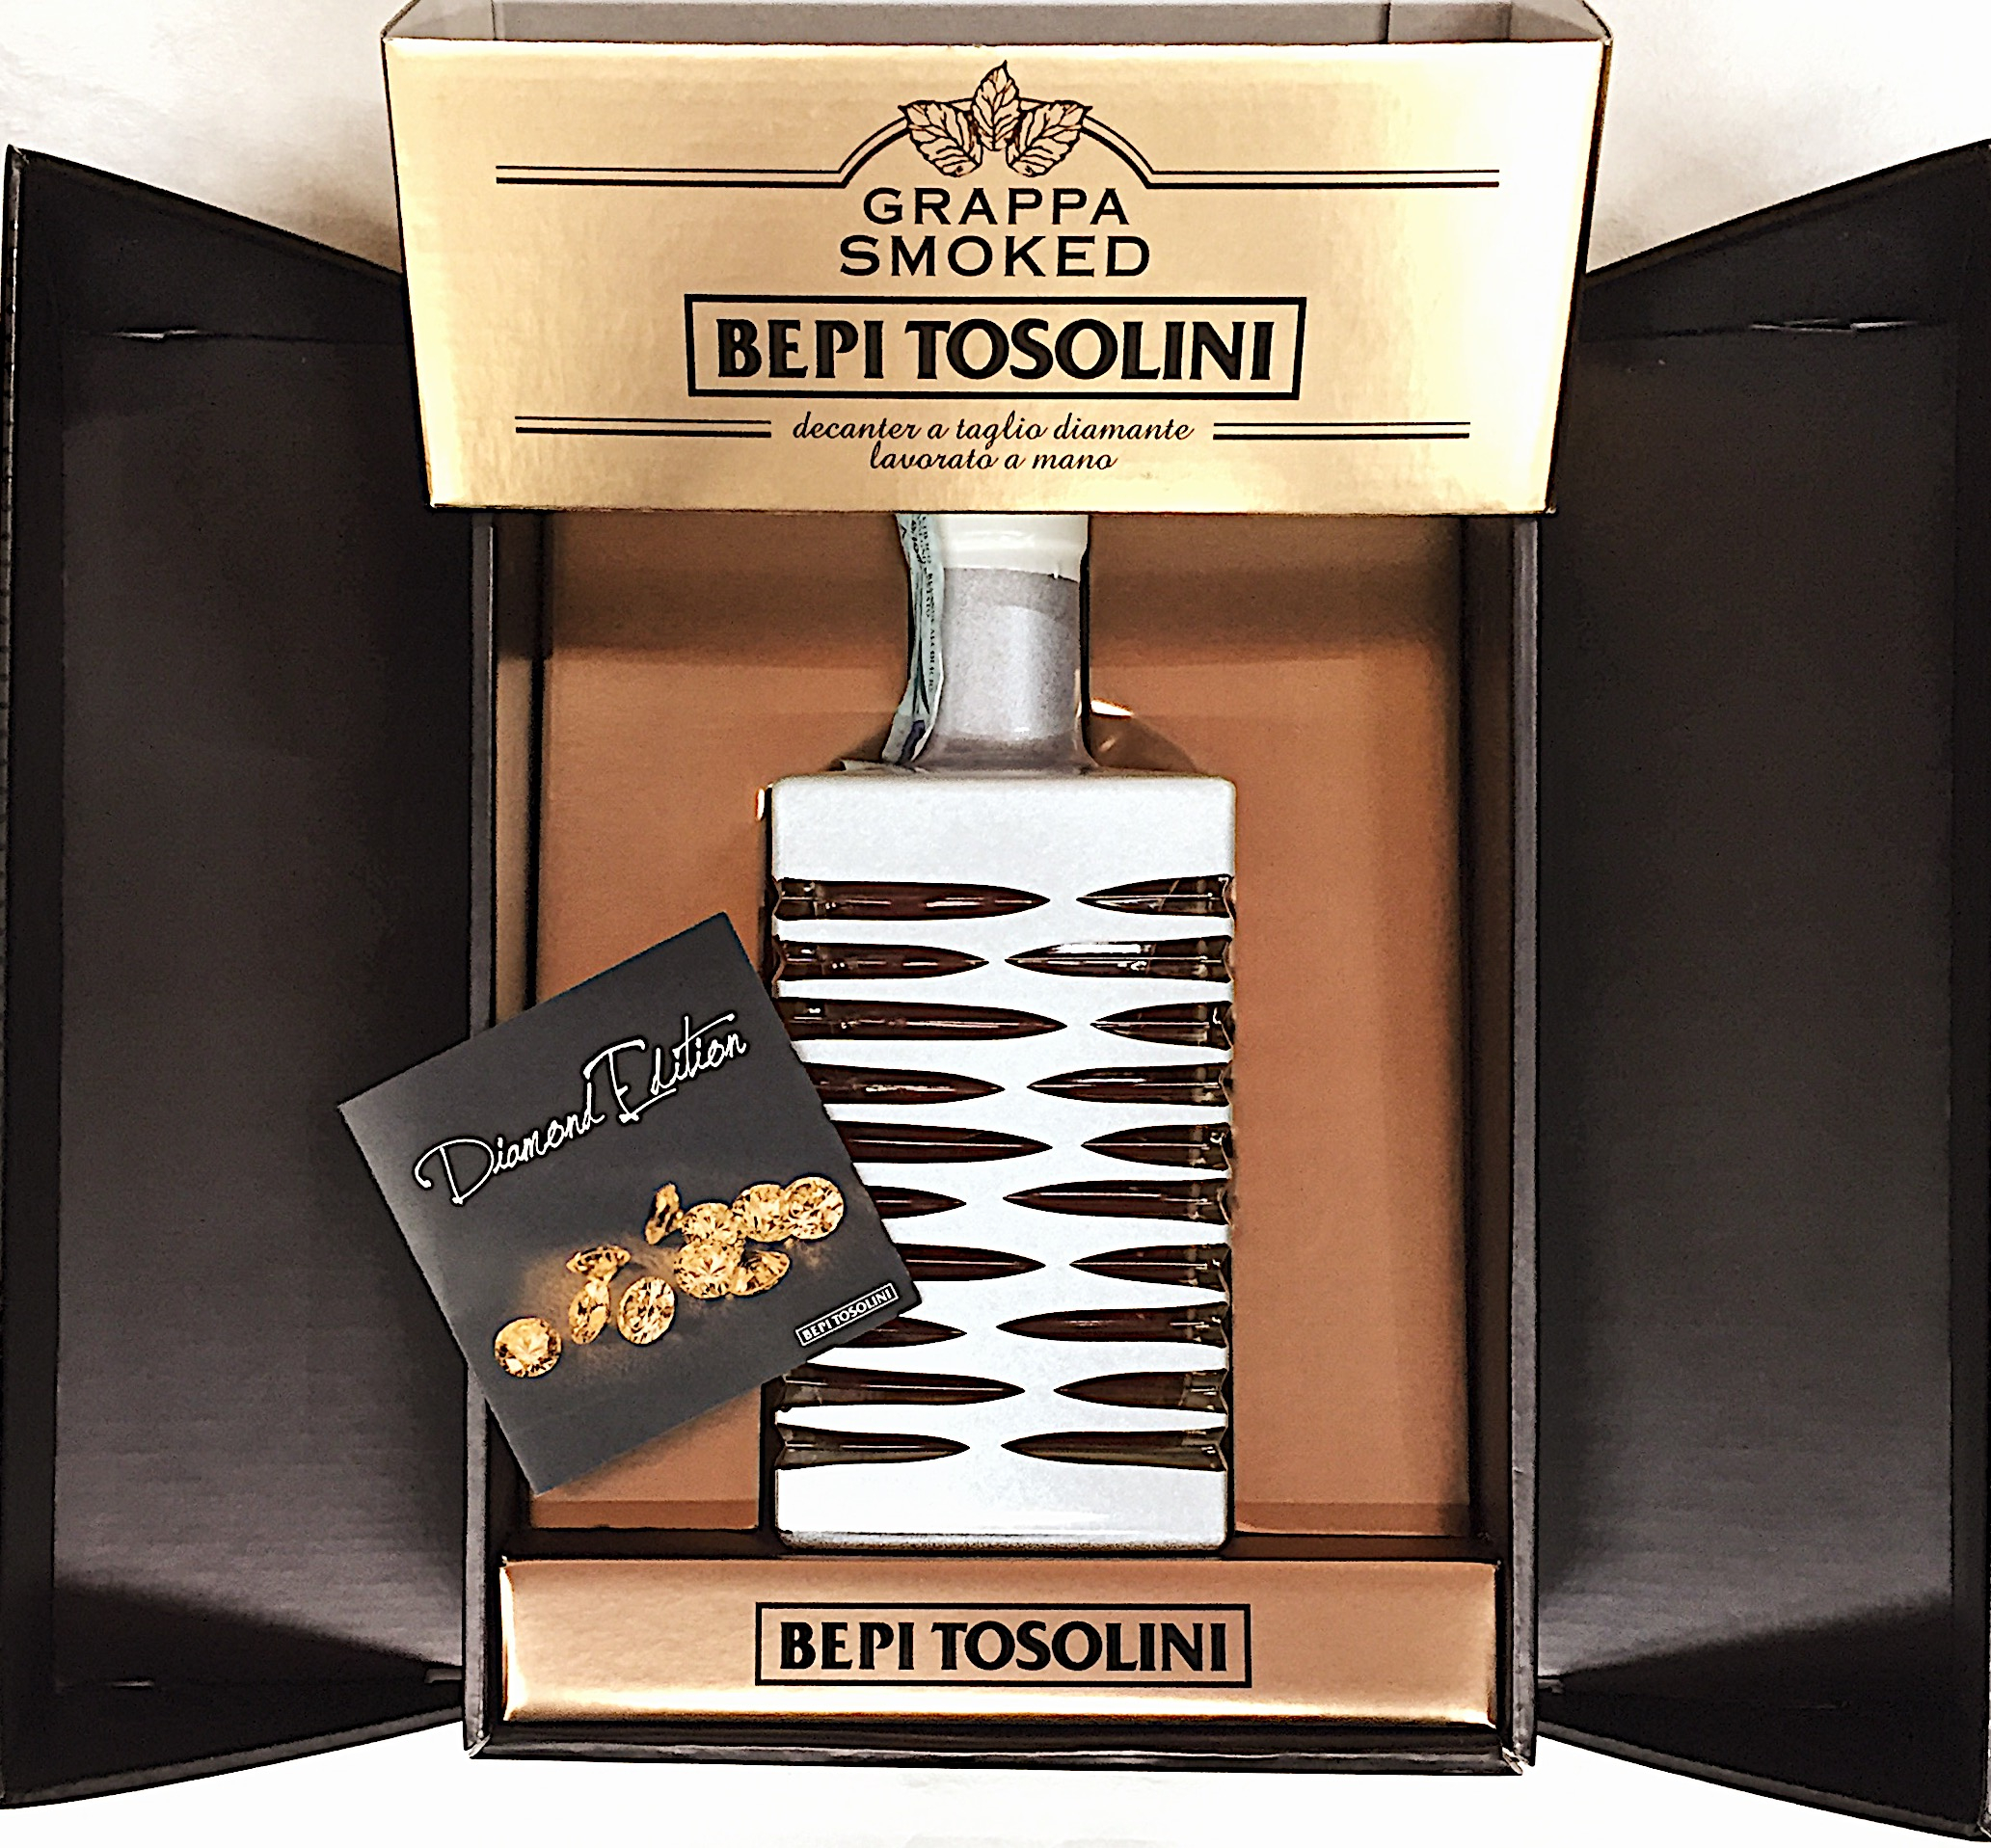 Grappa Smoked Light - Dist. Bepi Tosolini - Povoletto (UD)